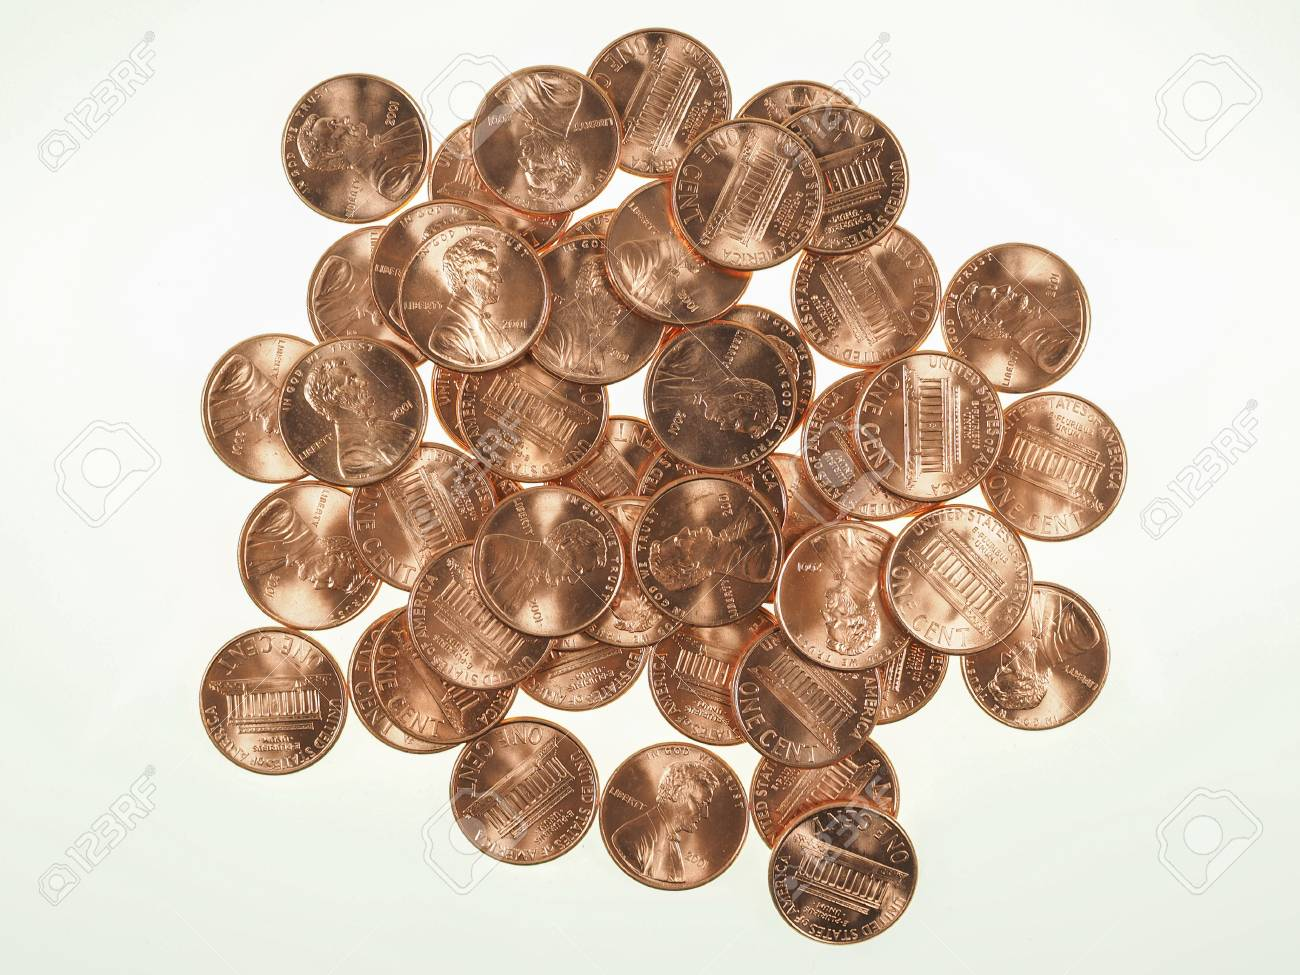 Dollar Coins 1 Cent Wheat Penny Cent Currency Of The United States